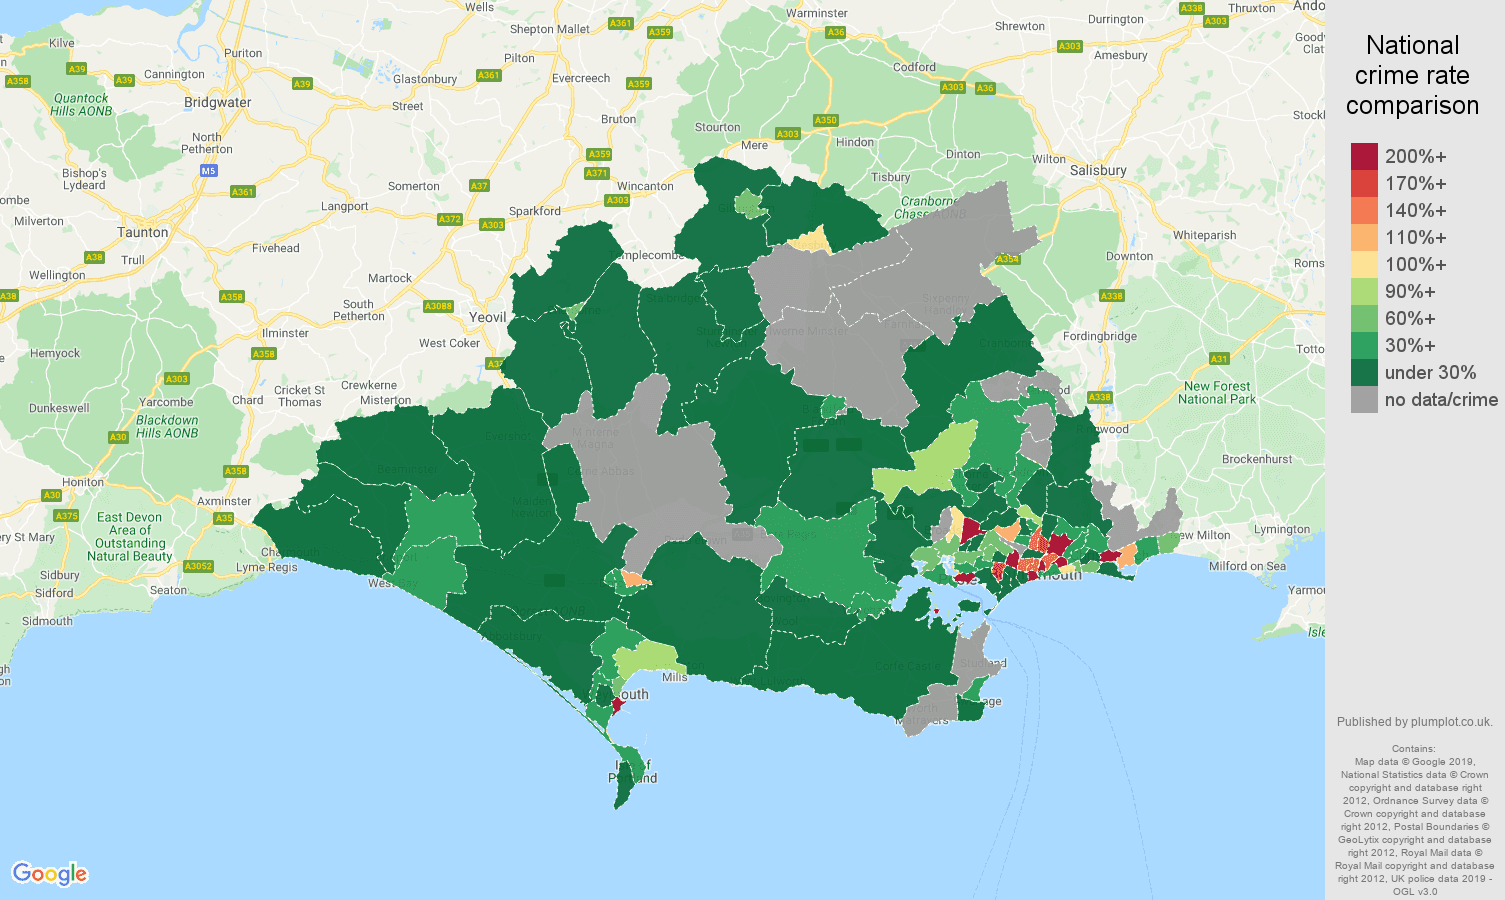 Dorset shoplifting crime rate comparison map